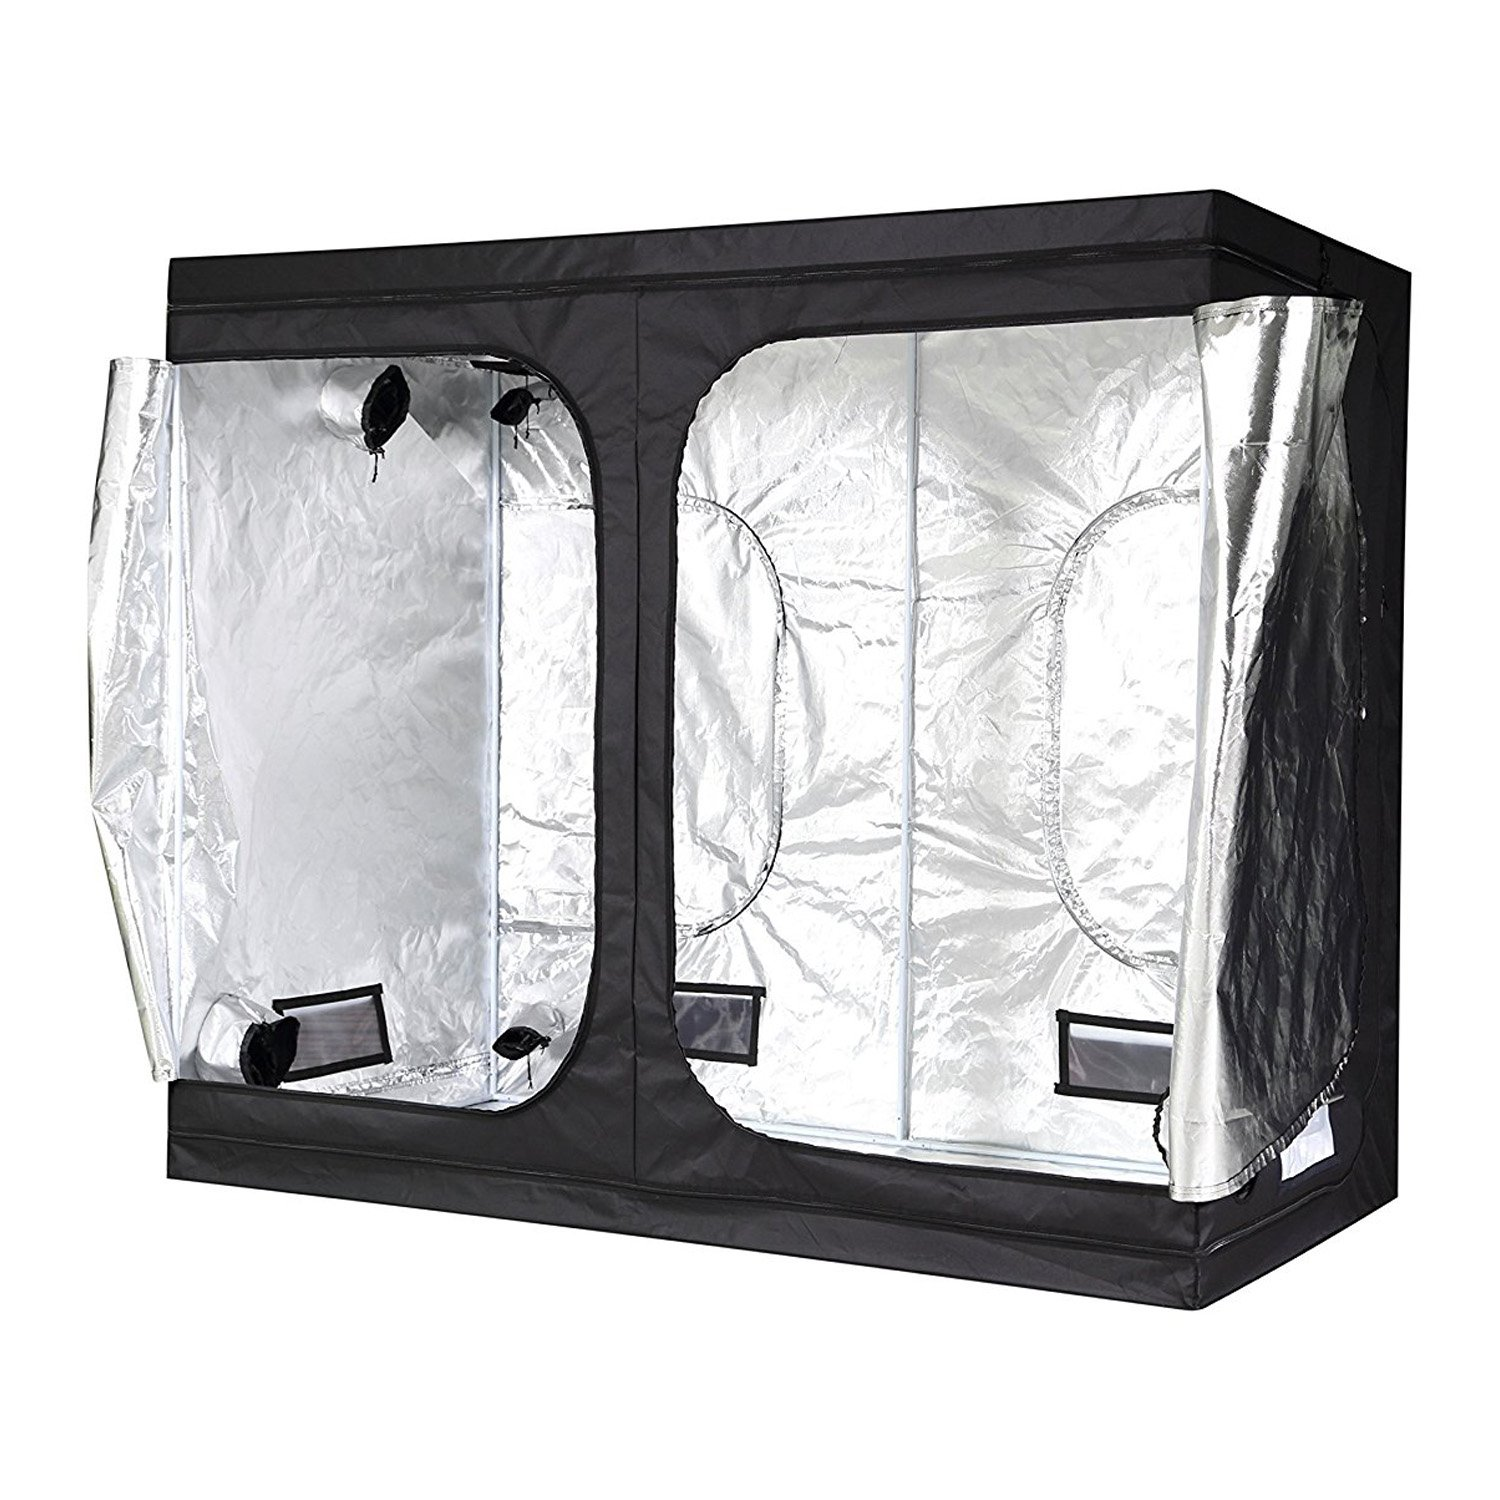 "iPower 96""x48""x80"" Hydroponic Water-Resistant Grow Tent"